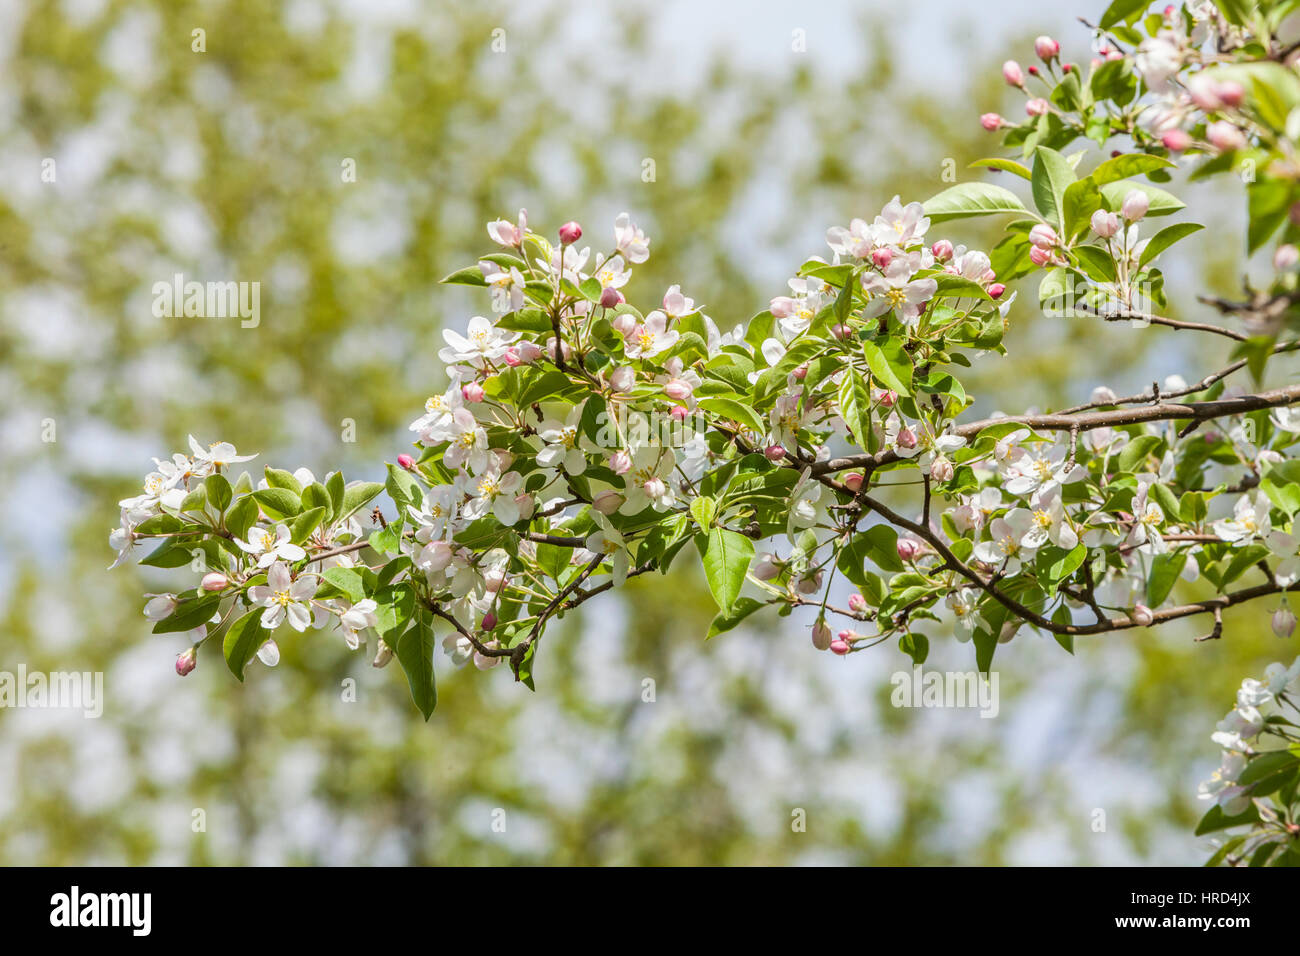 The limbs of a flowering tree, Maryland, USA. - Stock Image